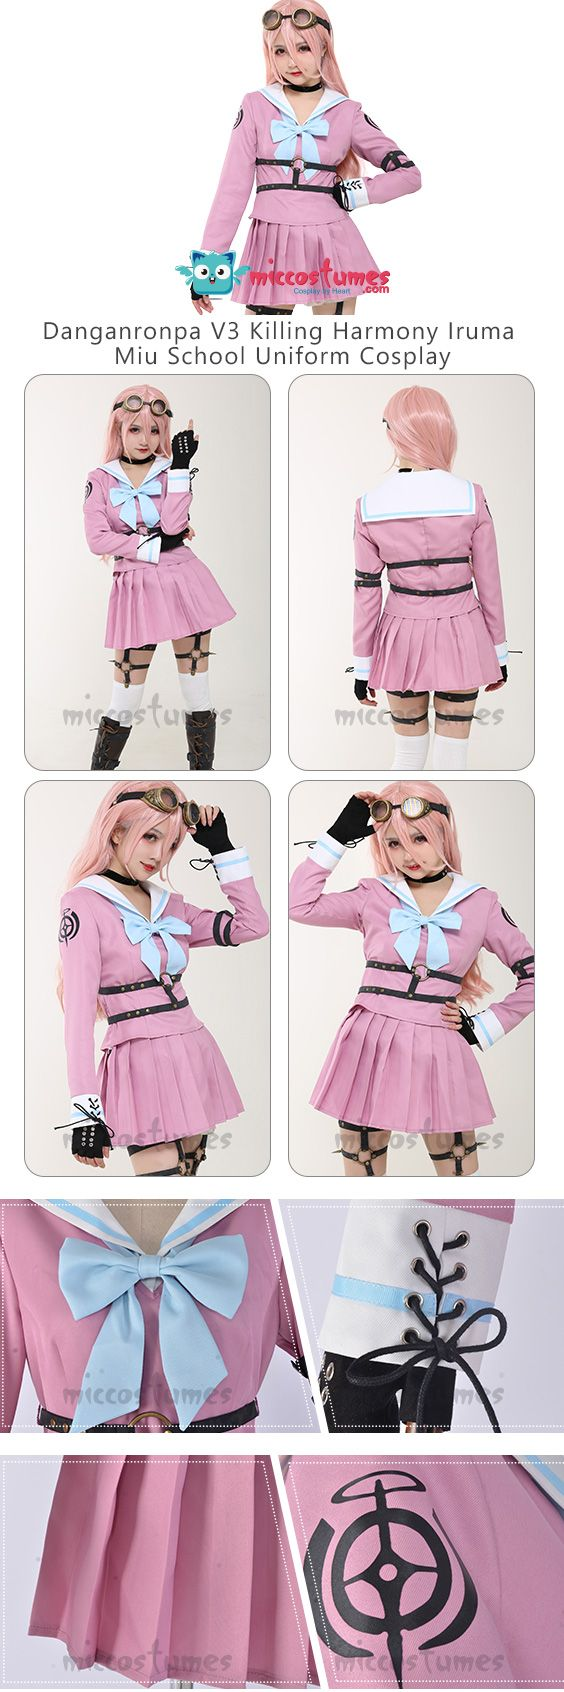 Danganronpa V3 Killing Harmony Iruma Miu School Uniform Cosplay Costume Set New